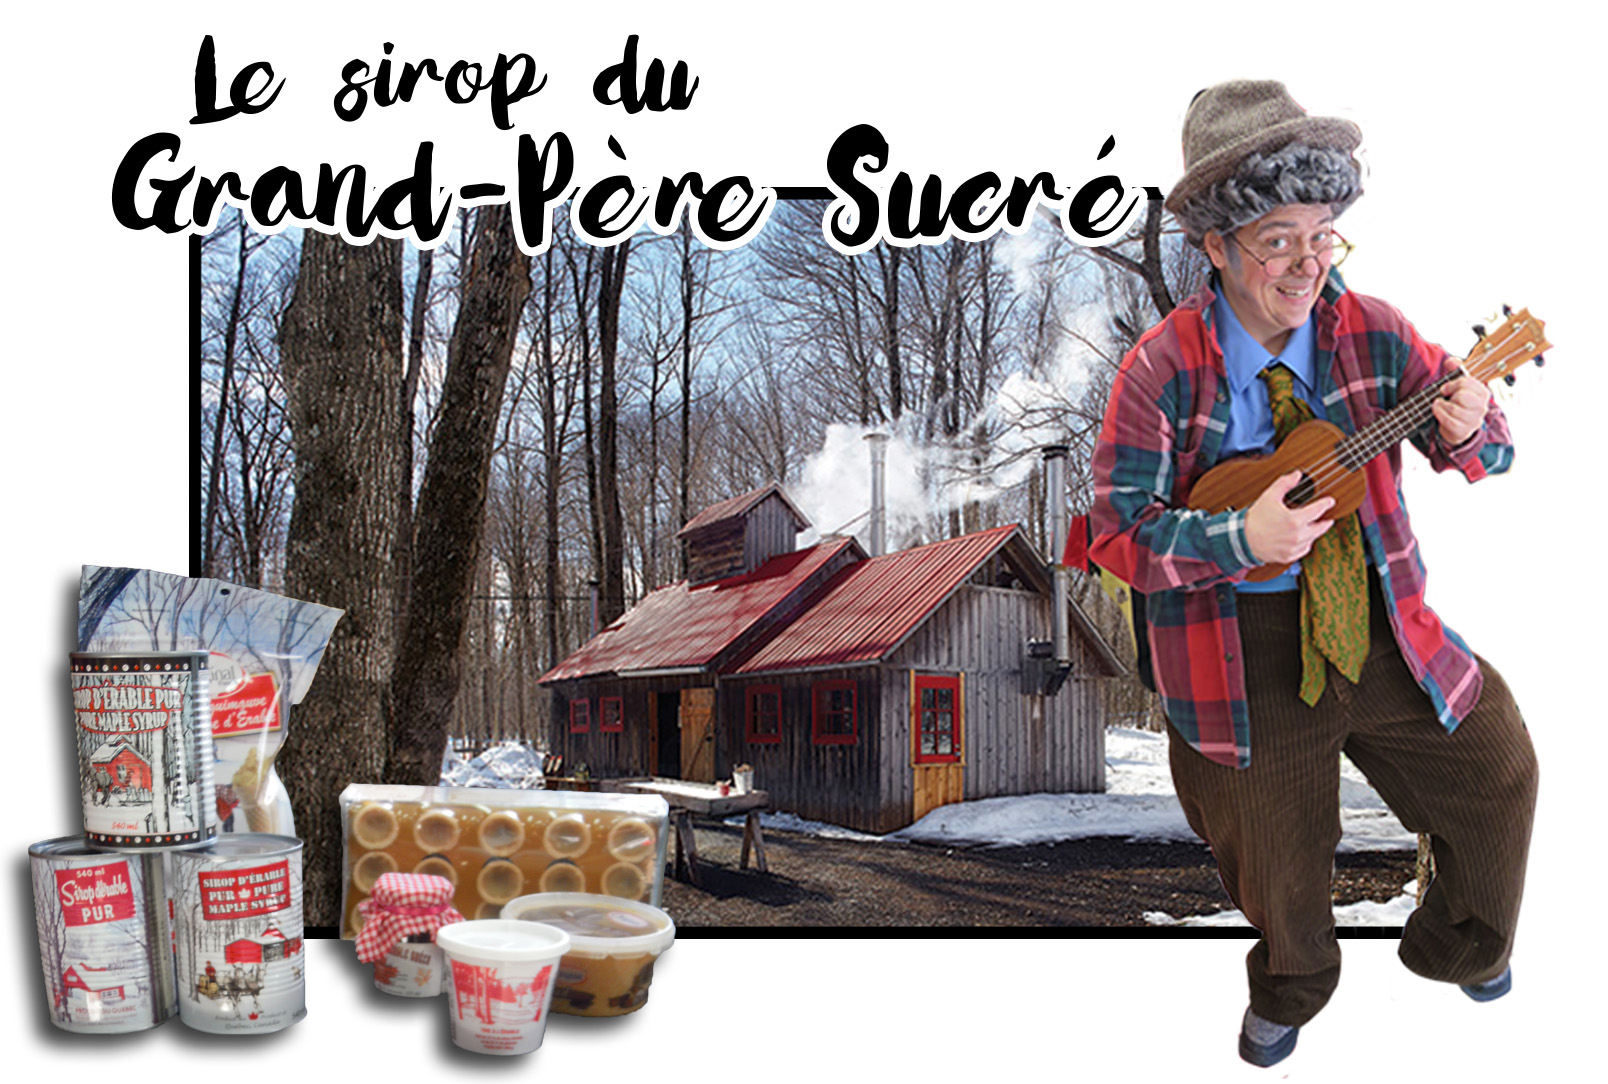 Image_Sirop_du_grand-pere_sucre.jpg (497 KB)